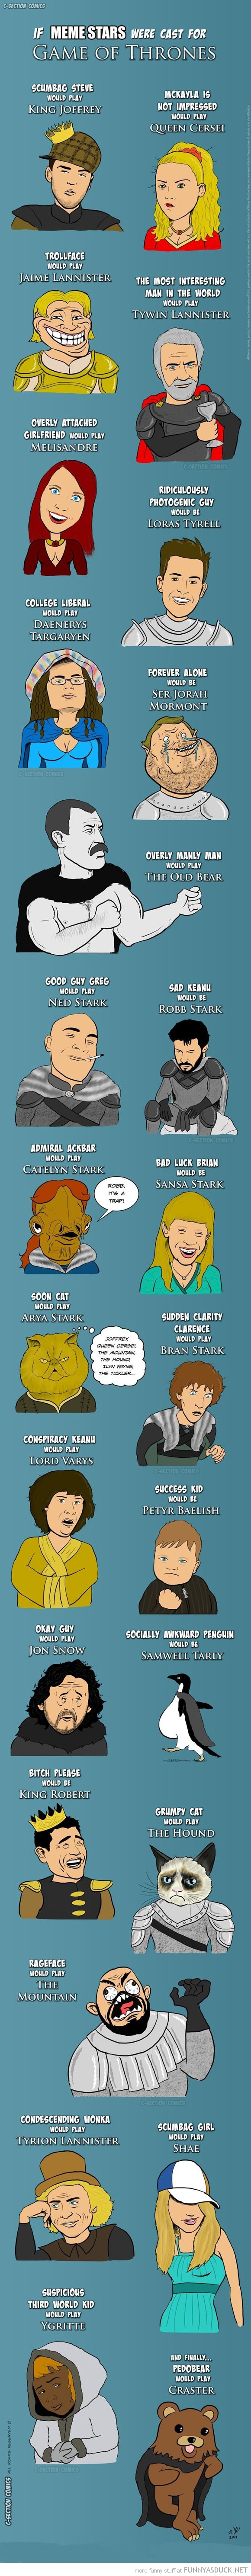 Meme Stars As Game Of Thrones Characters